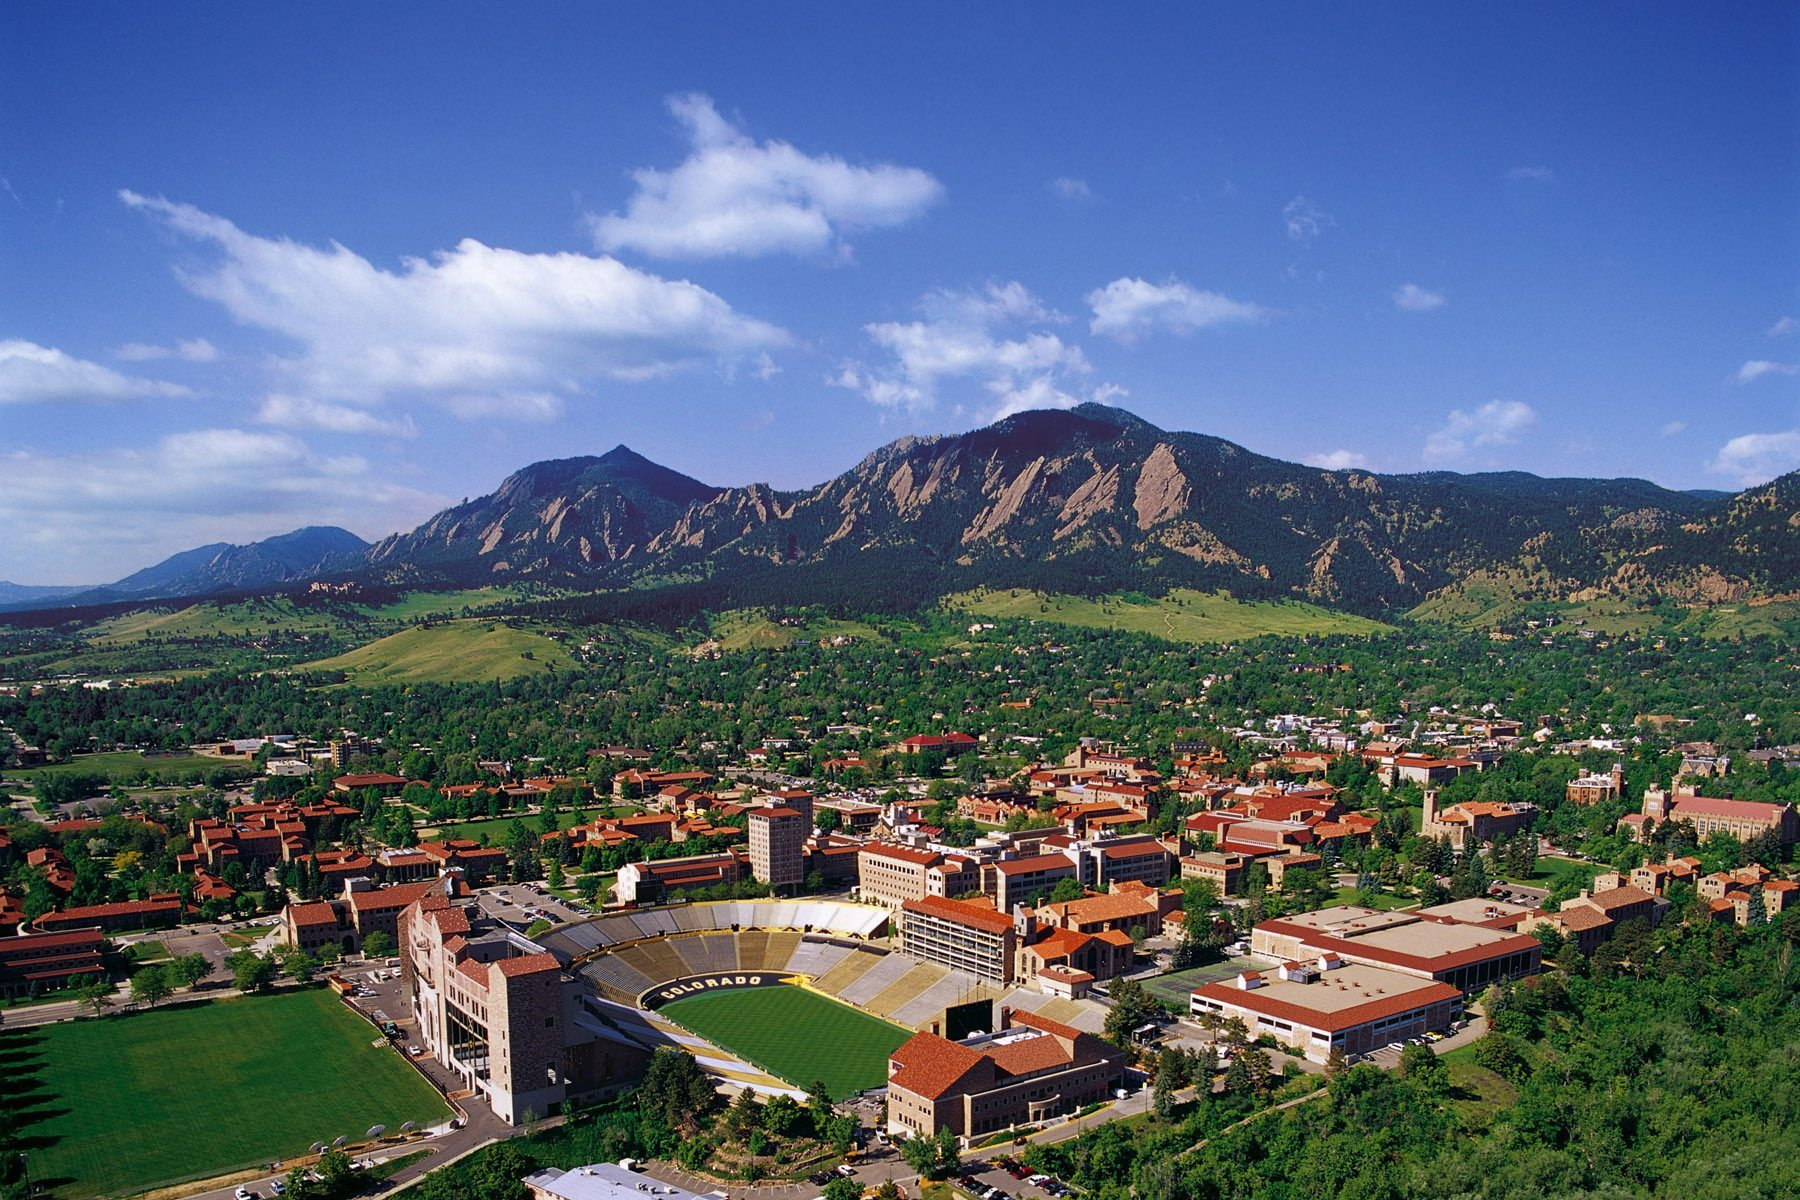 University of Colorado Campus Overview